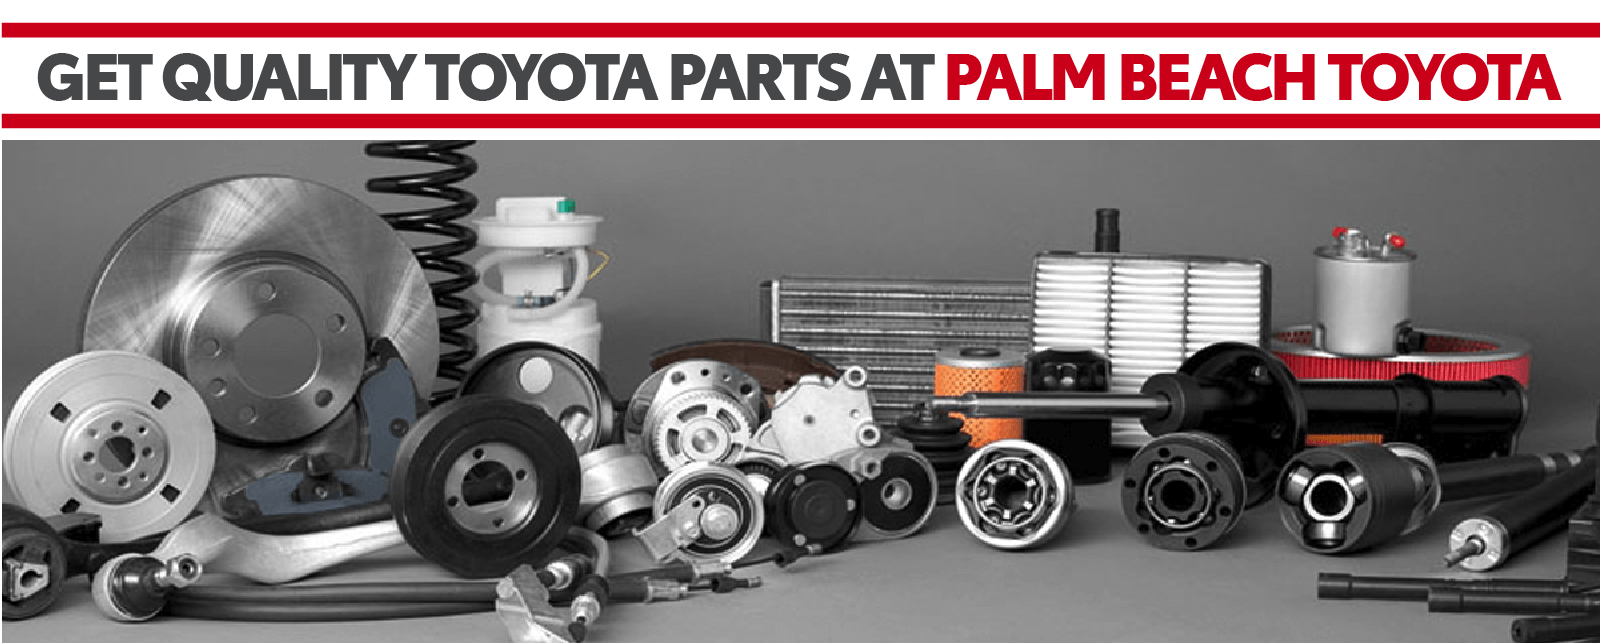 PARTS SPECIALS Pick any offer and click for an instant parts discount coupon on your Toyota car, truck, or SUV.Complimentary services for EVERY service visit! Only at Palm Beach Toyota!